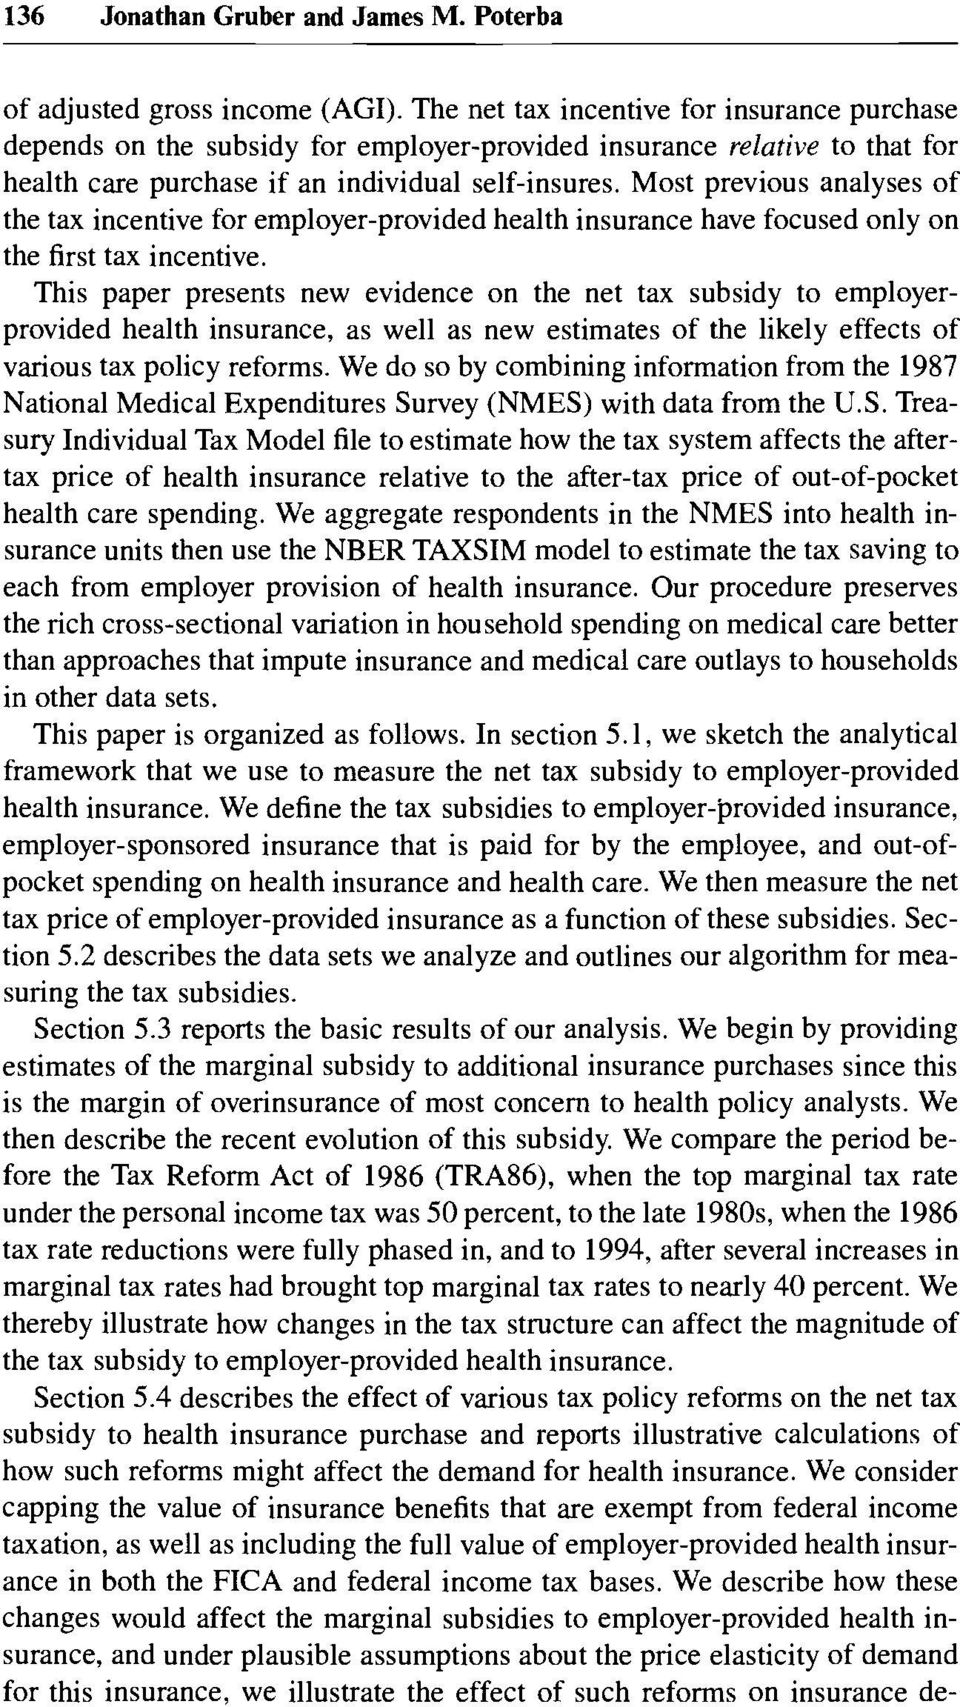 Most previous analyses of the tax incentive for employer-provided health insurance have focused only on the first tax incentive.